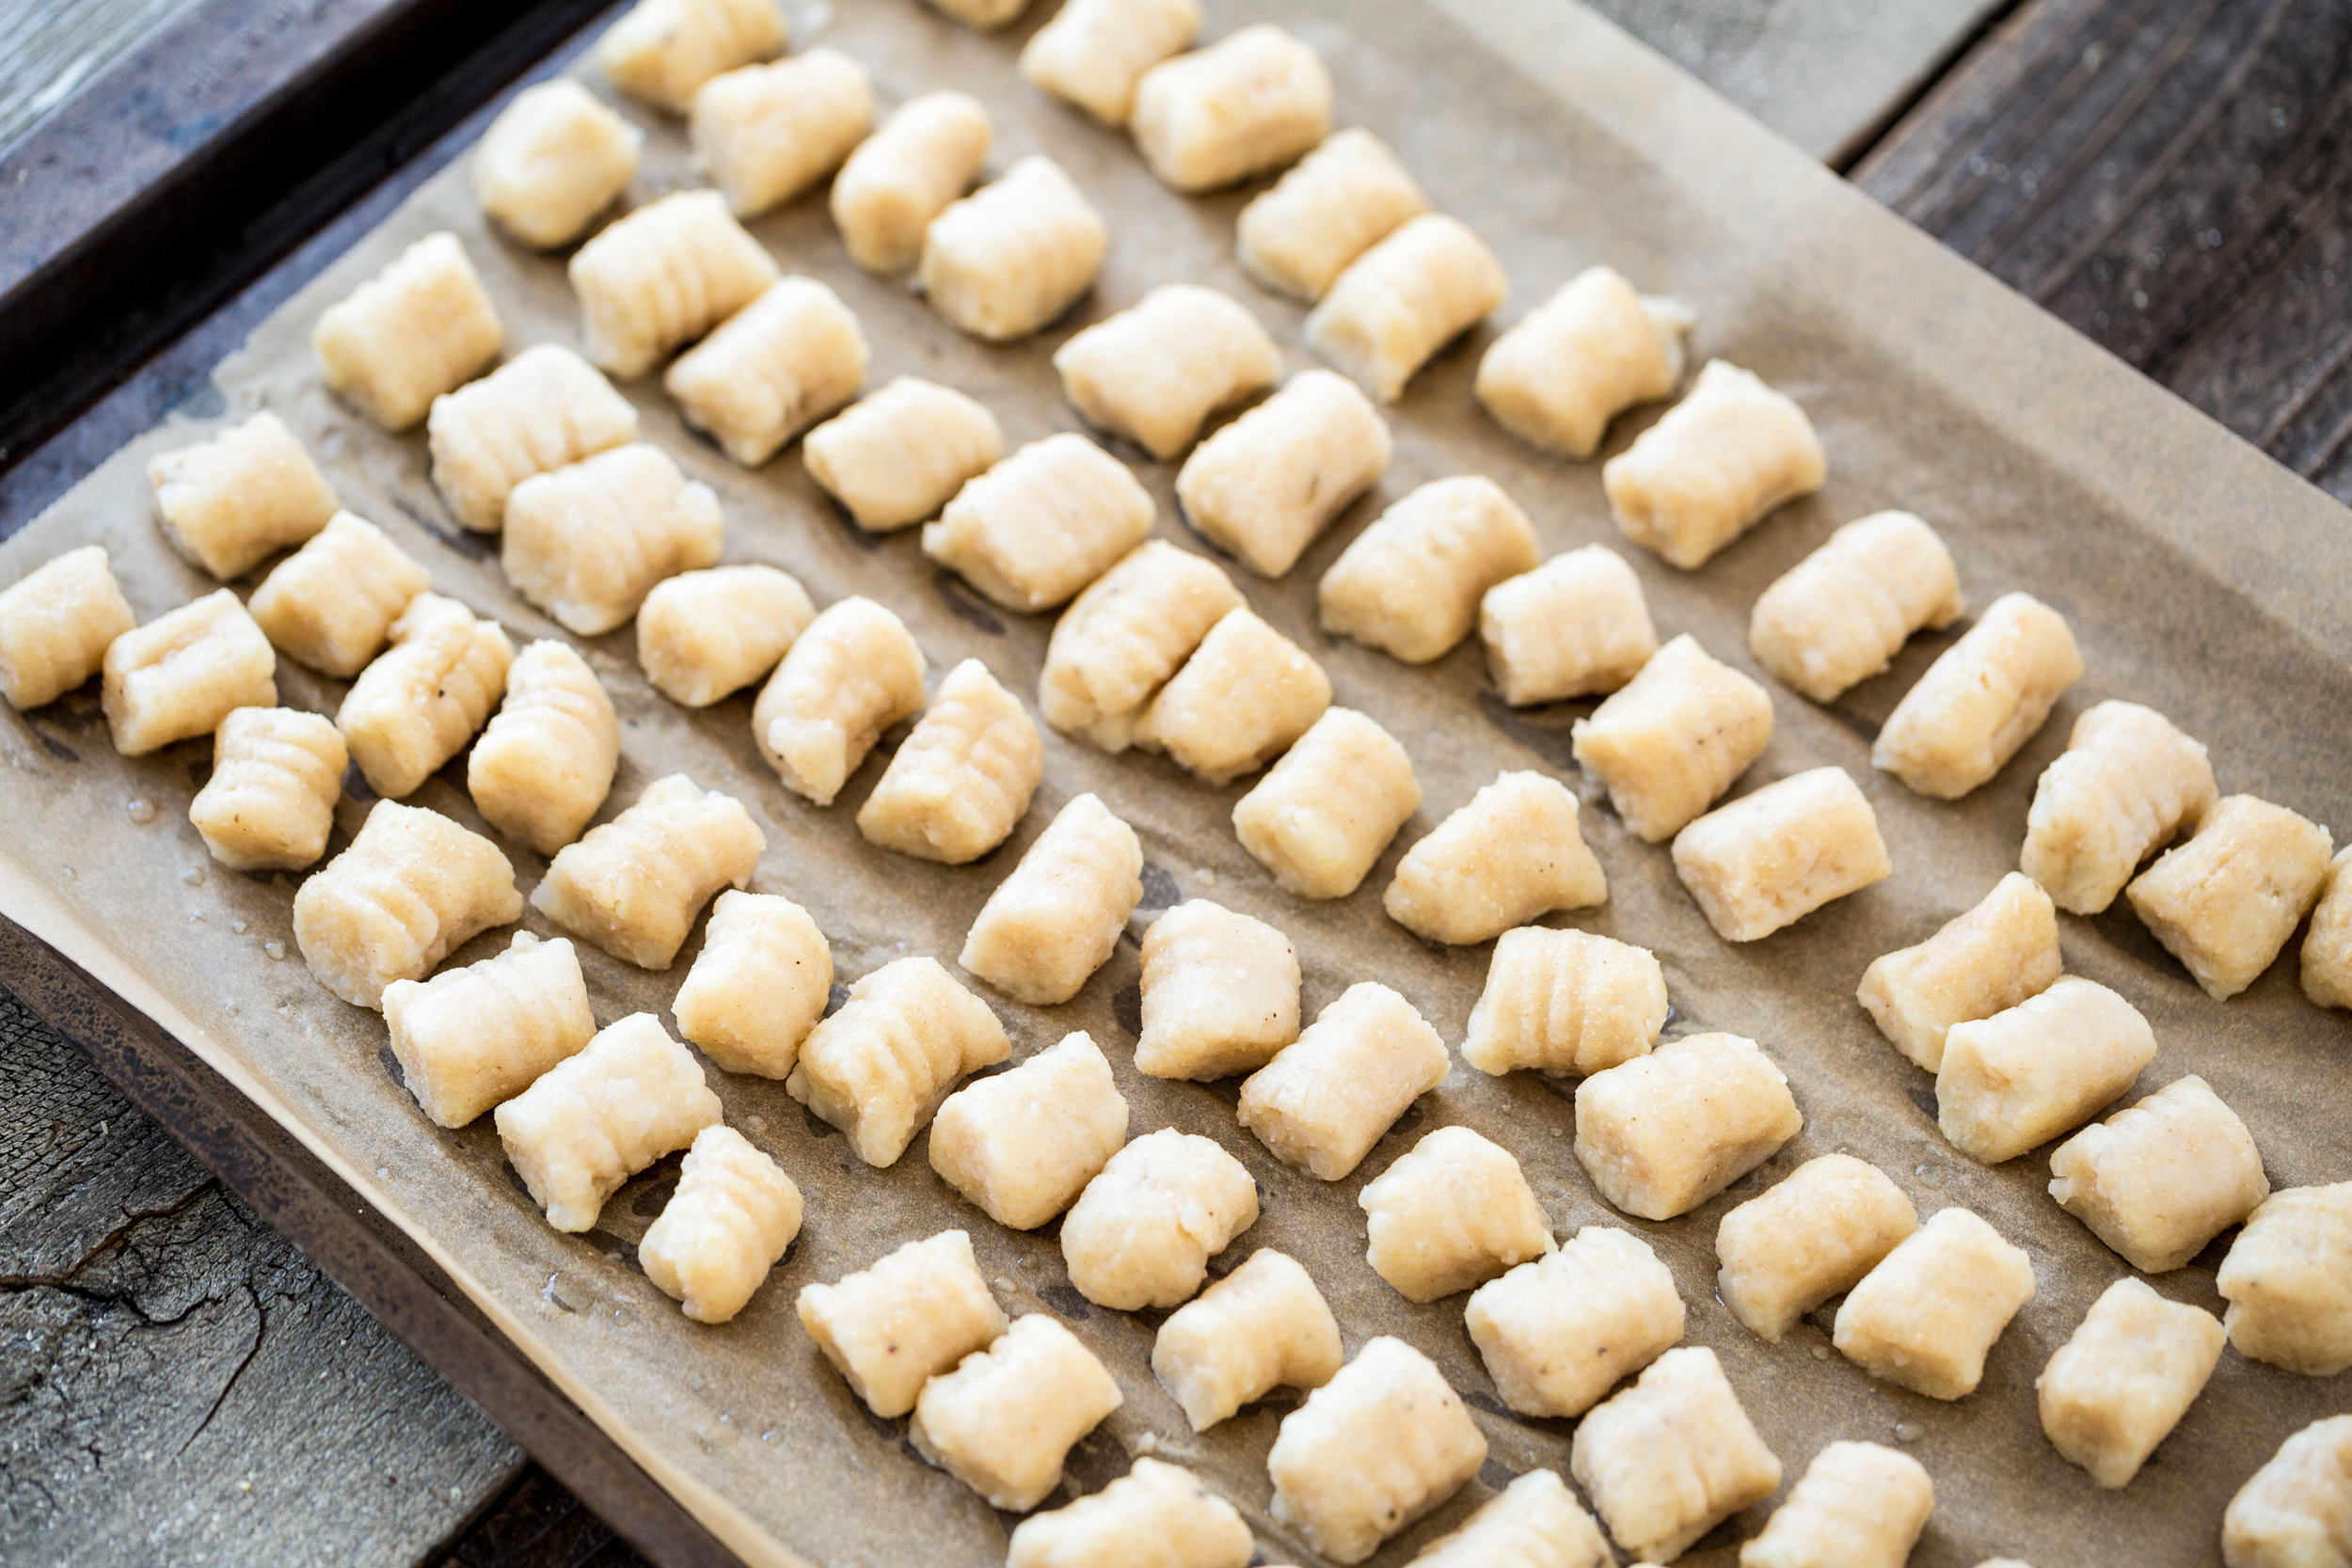 Gluten free gnocchi recipes easy